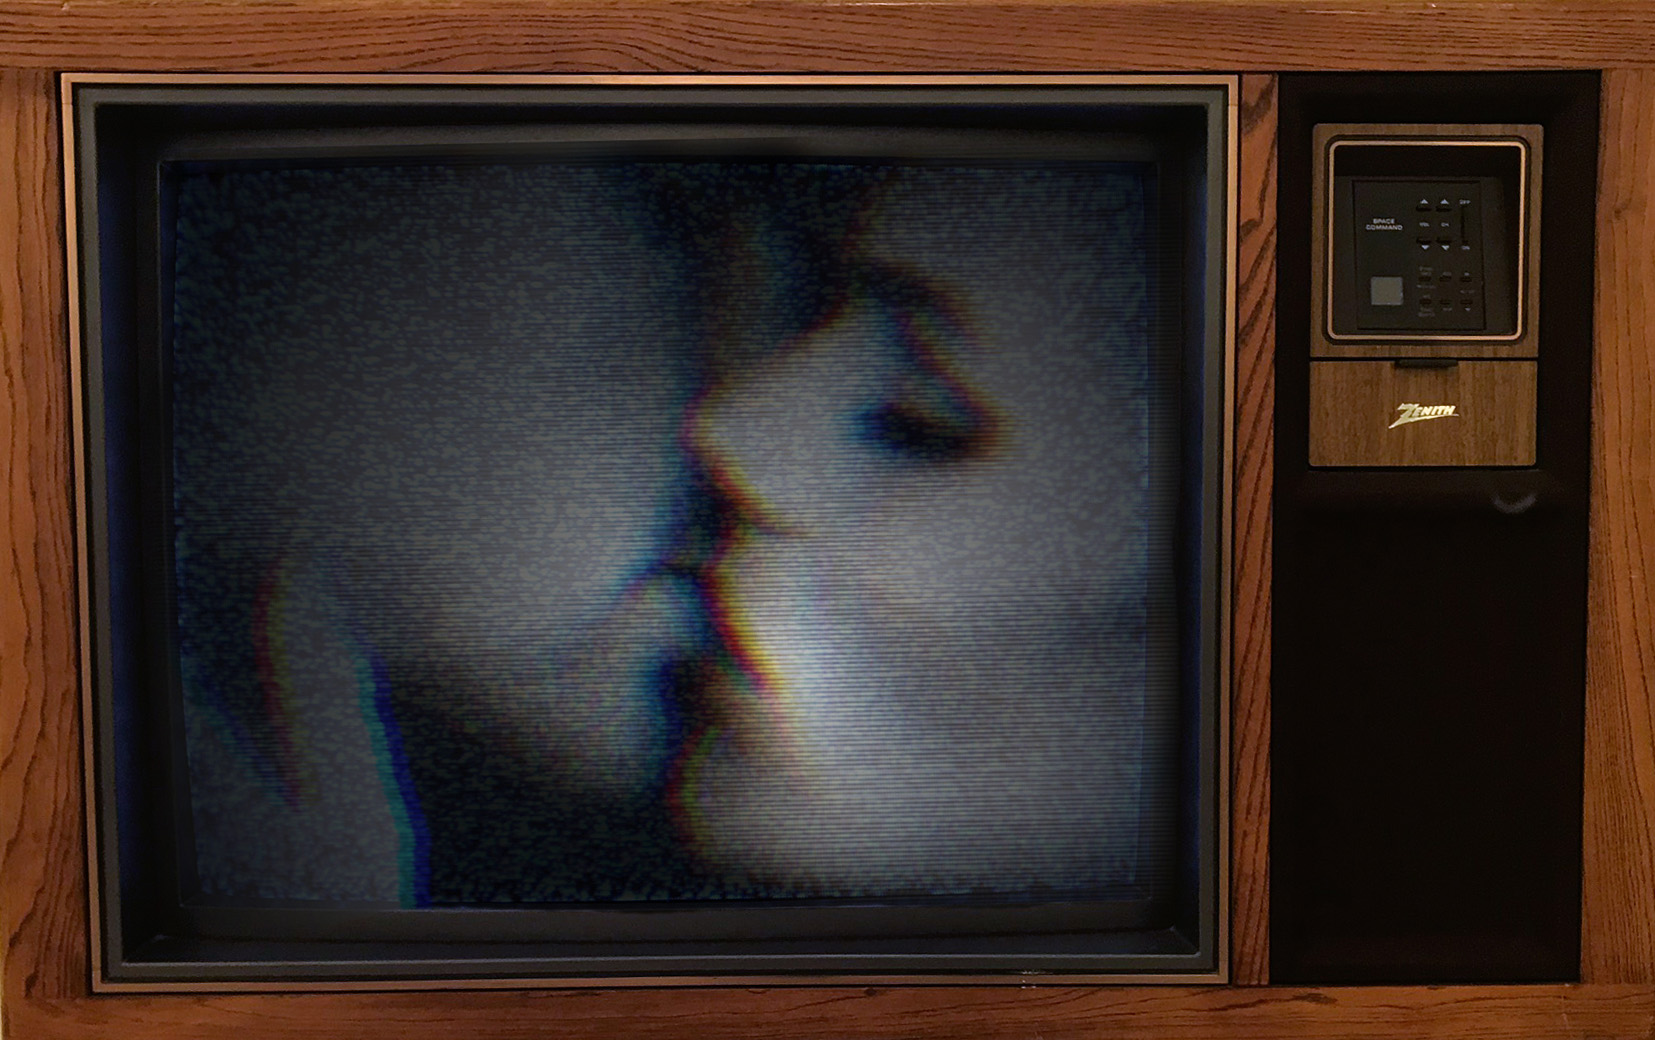 INIDRA-CESARINE_Kiss-Me_VIDEO-ON-VINTAGE-ZENITH-TV_2018-crop.jpg